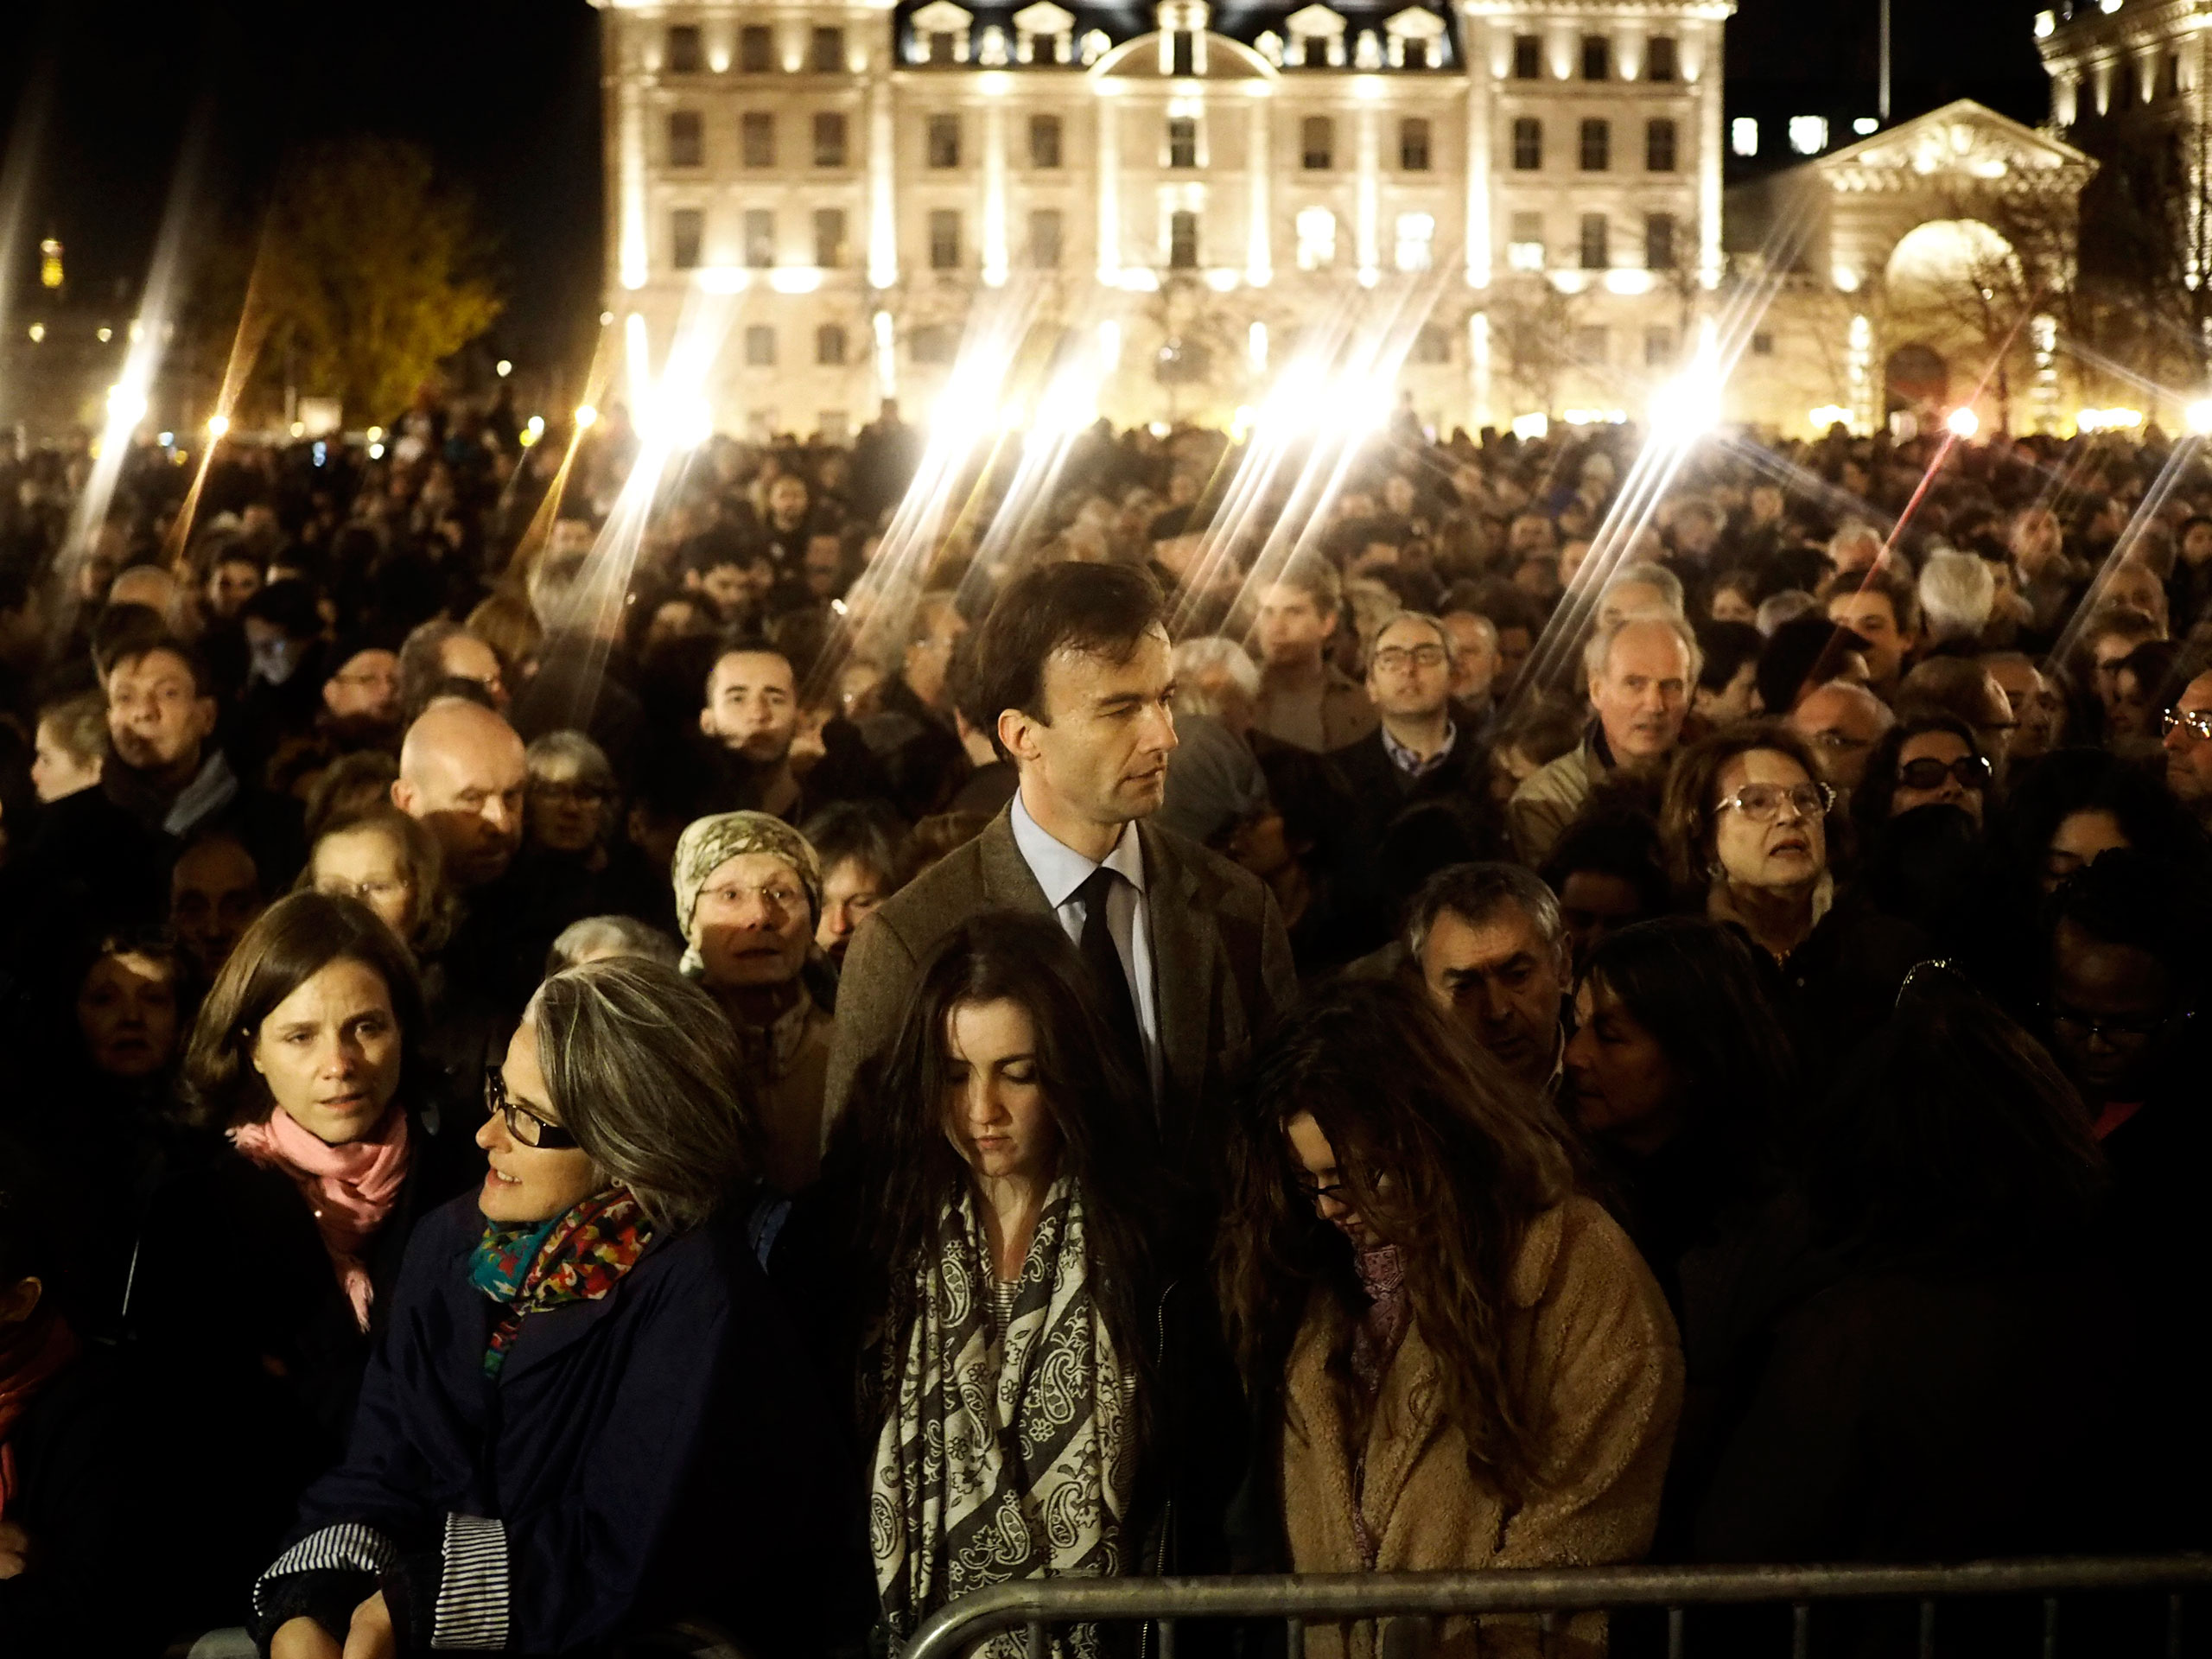 People gather outside of Notre Dame cathedral ahead of a ceremony in memory of the victims of the terrorist attacks in Paris, France. Nov. 15, 2015.